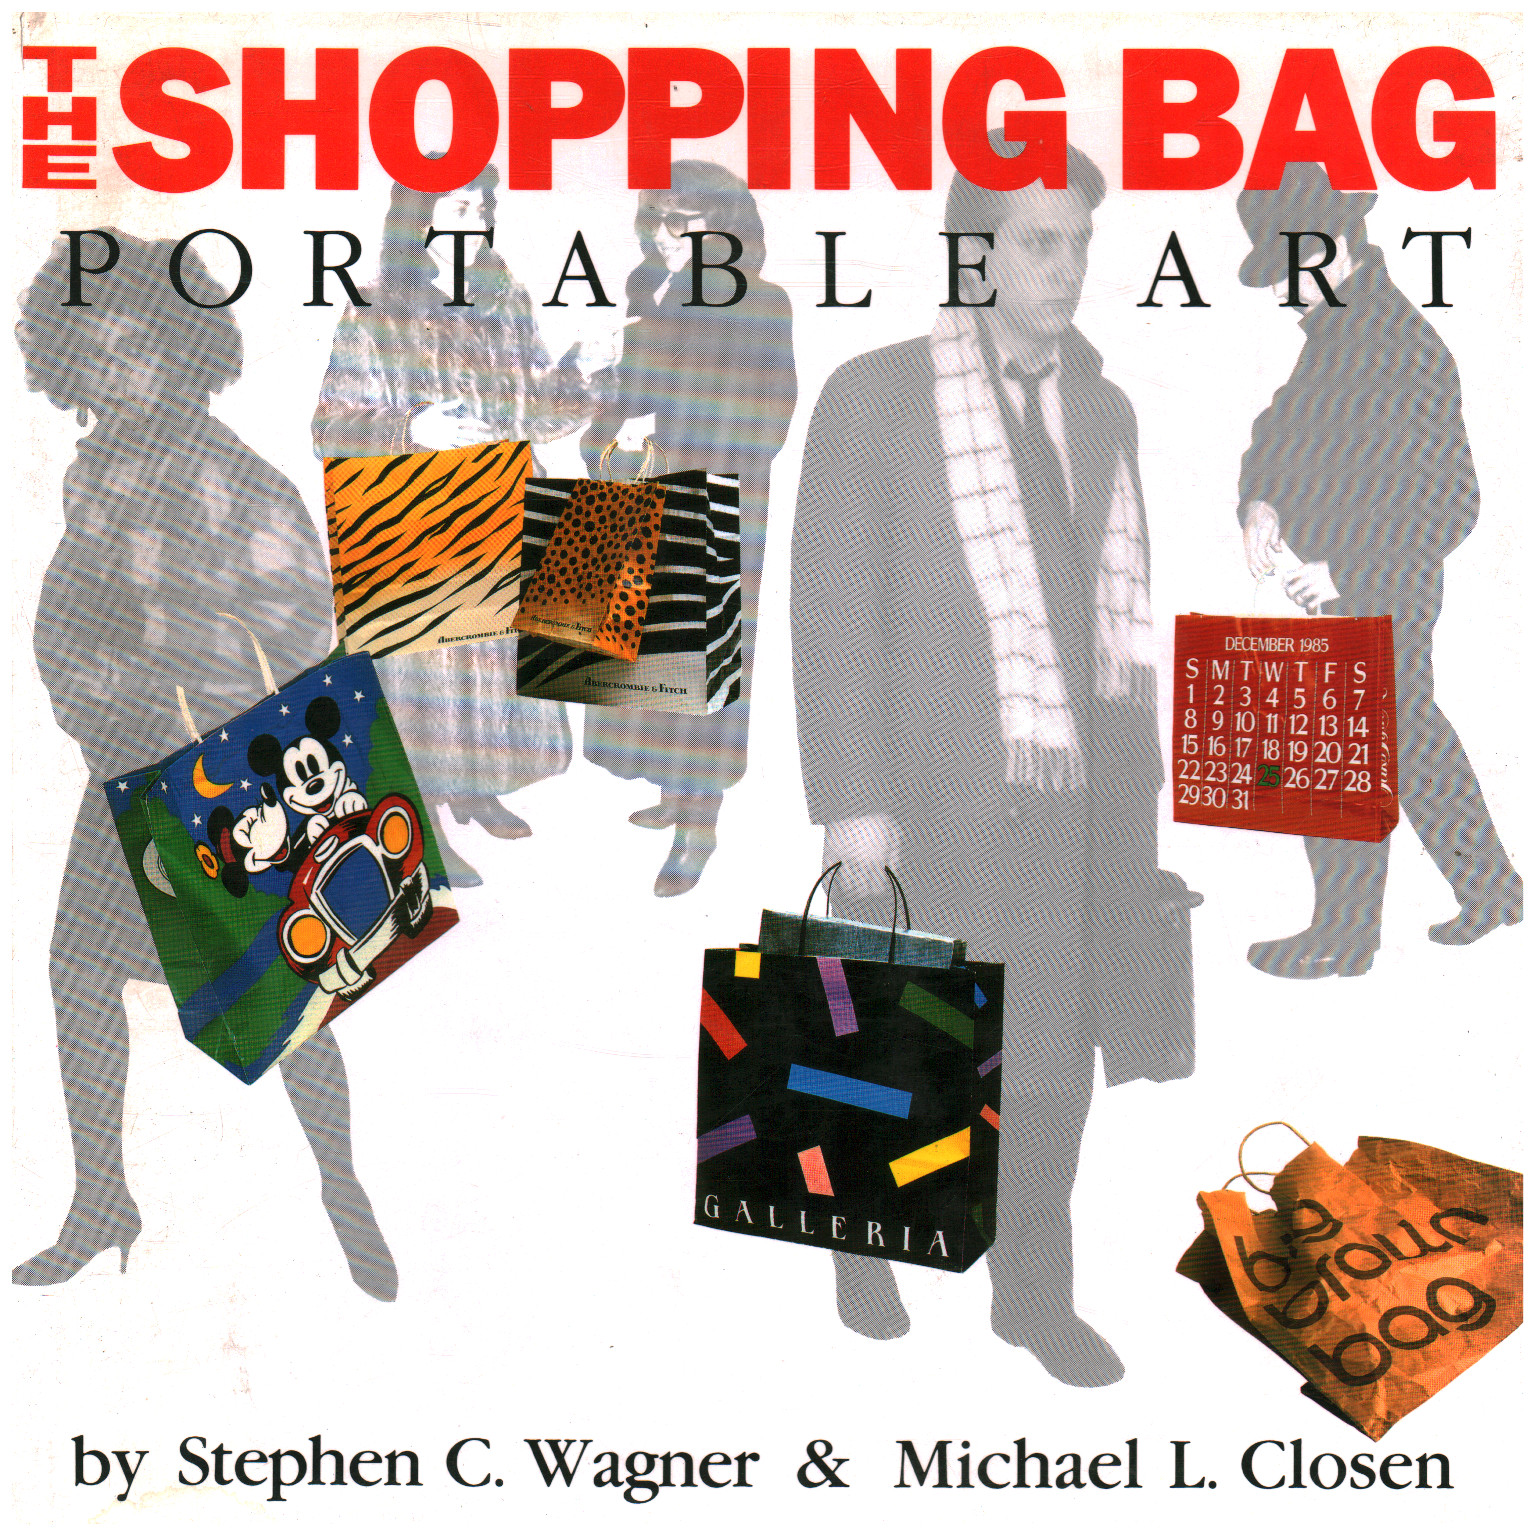 The shopping bag, s.a.